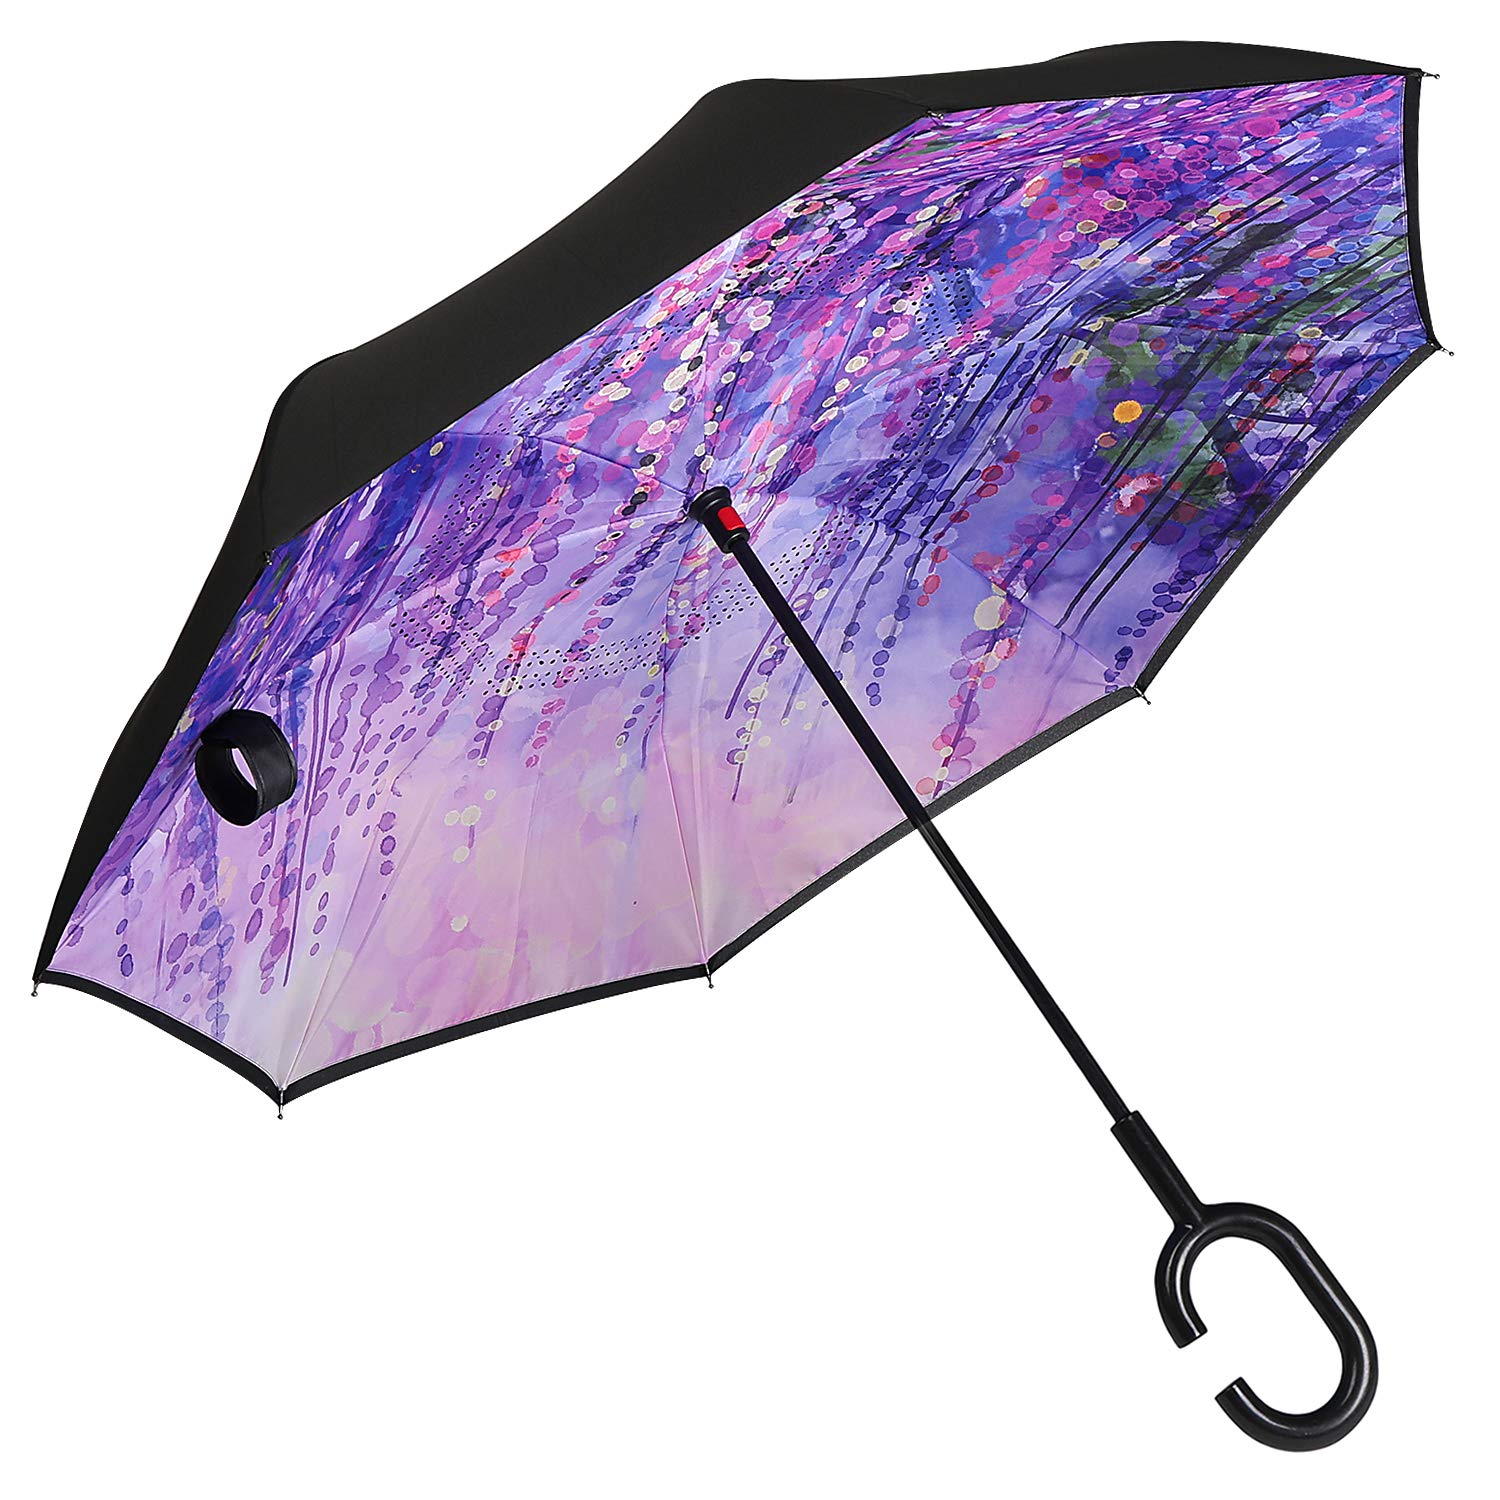 Owen Kyne Windproof Double Layer Folding Inverted Umbrella, Self Stand Upside-Down Rain Protection Car Reverse Umbrellas with C-Shaped Handle (New Wisteria Tree) by Owen Kyne